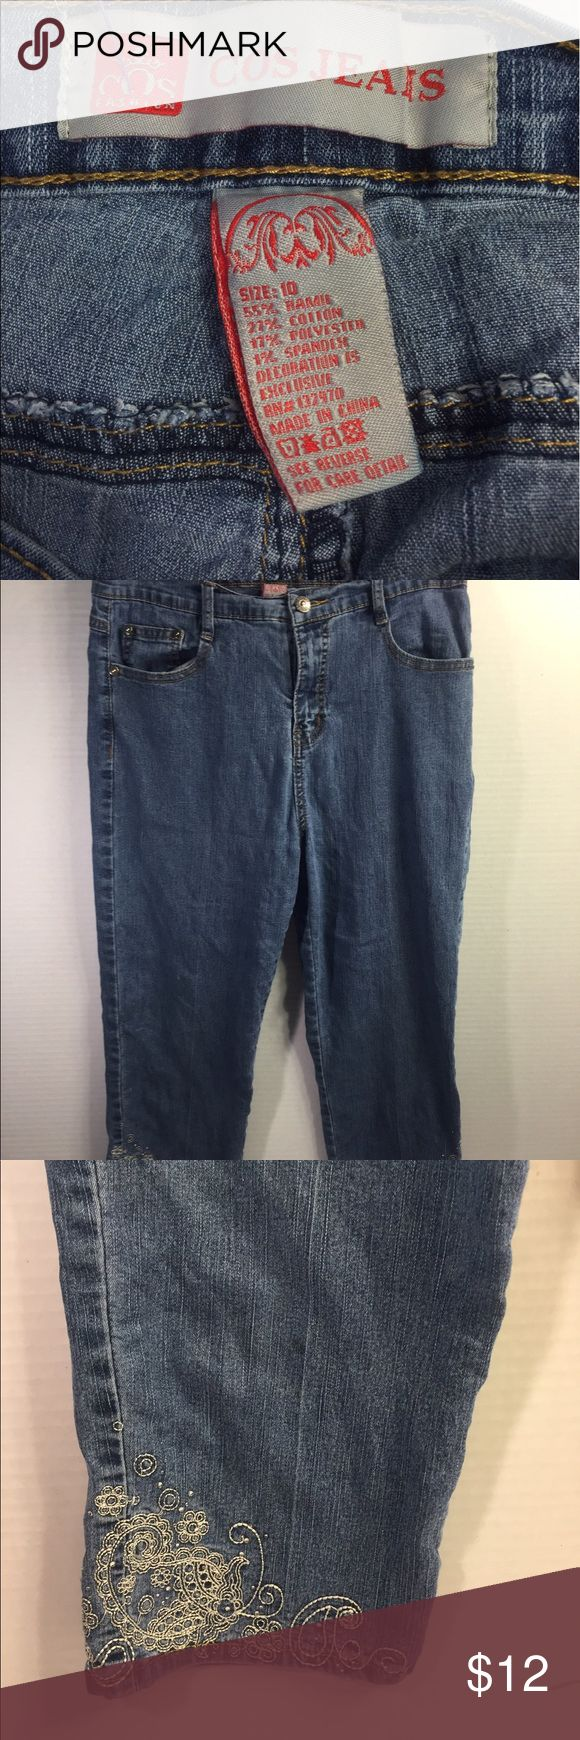 COS CAPRI SZ 10 WOMENS light washed Jean Very Cute white embroidered on pockets and cuffs COS Jeans